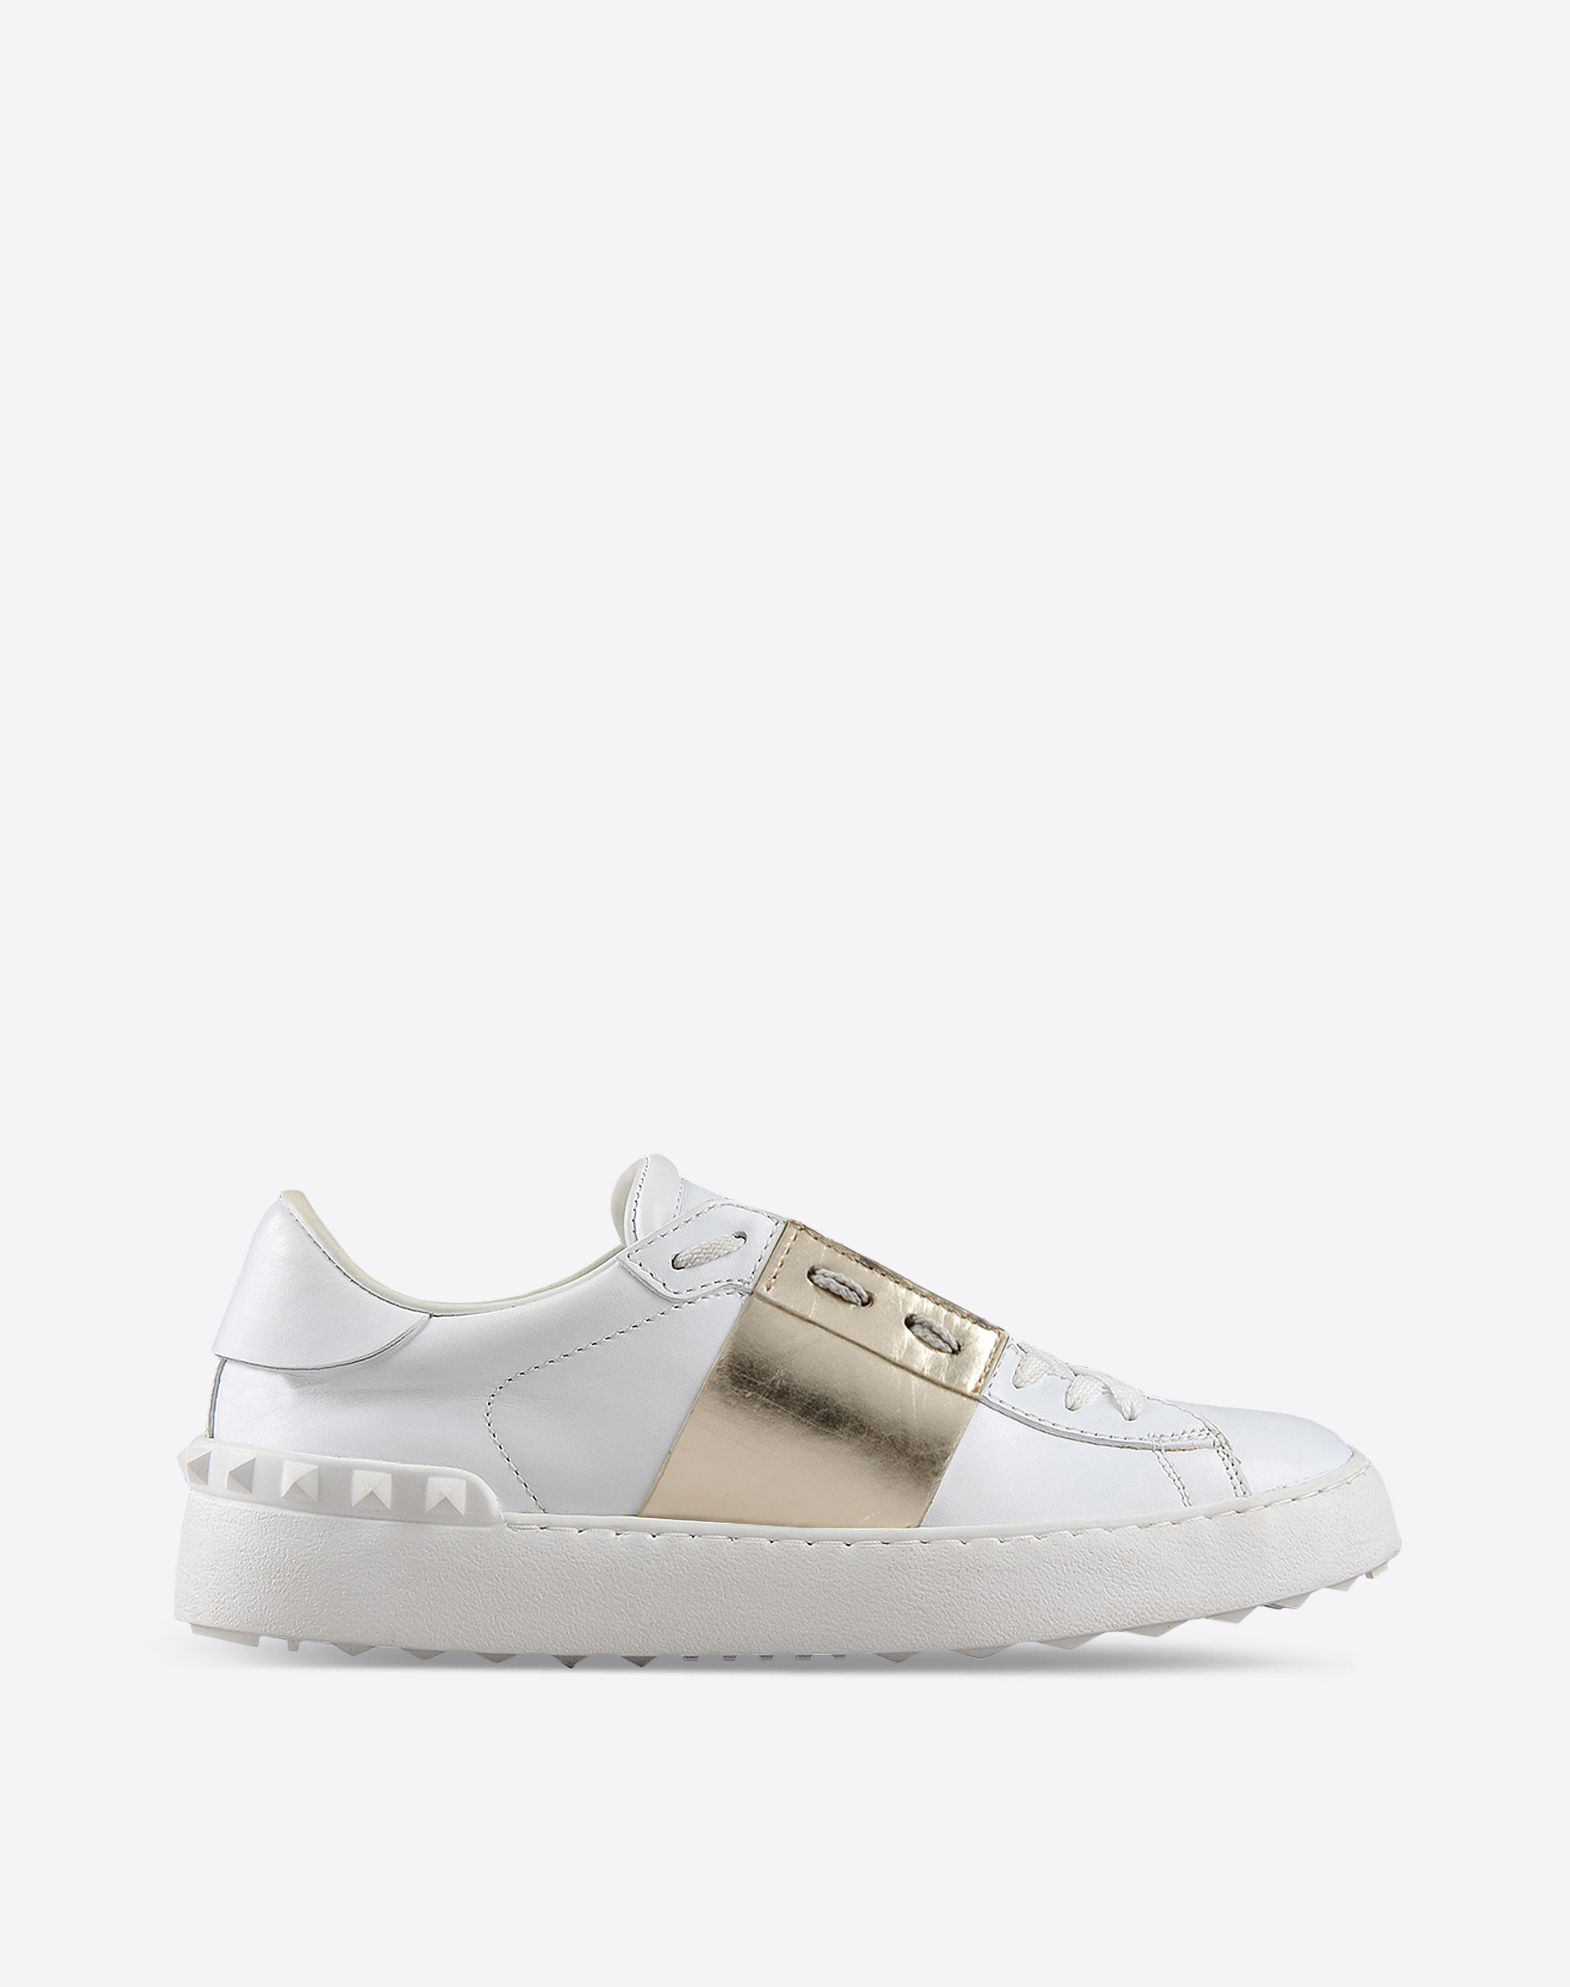 Valentino Tennis Shoes